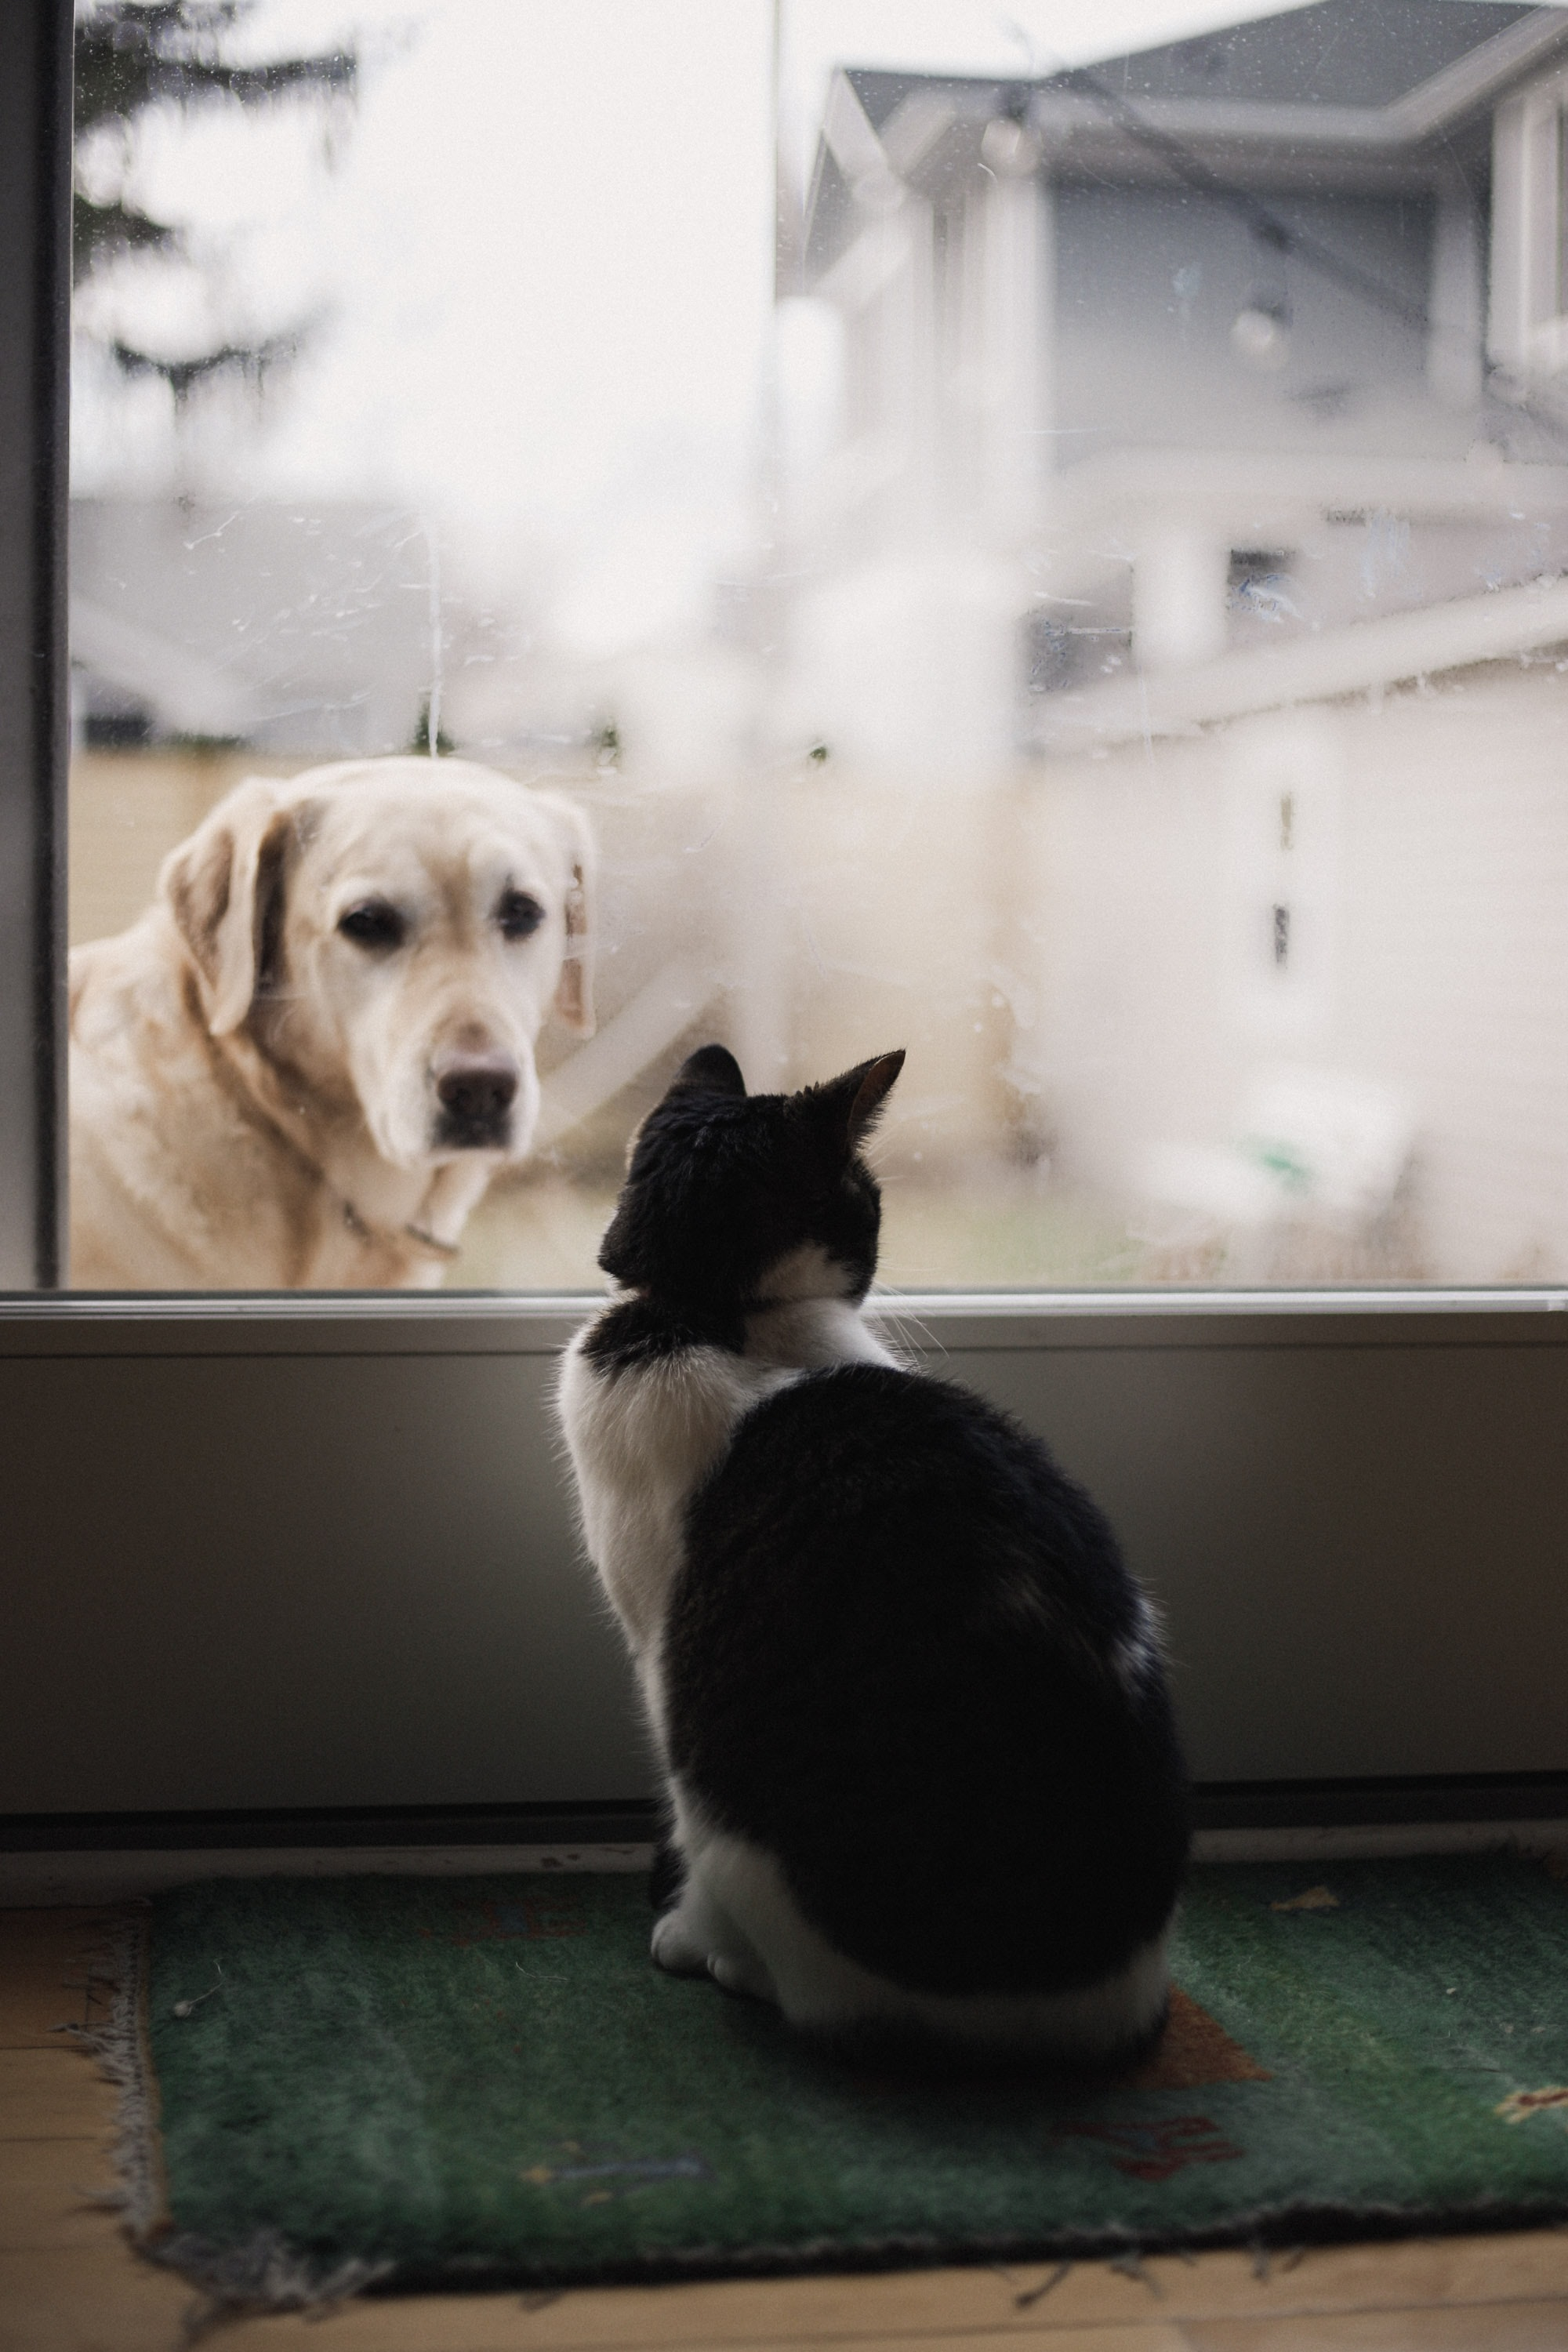 black and white cat watching adult yellow Labrador retriever on window